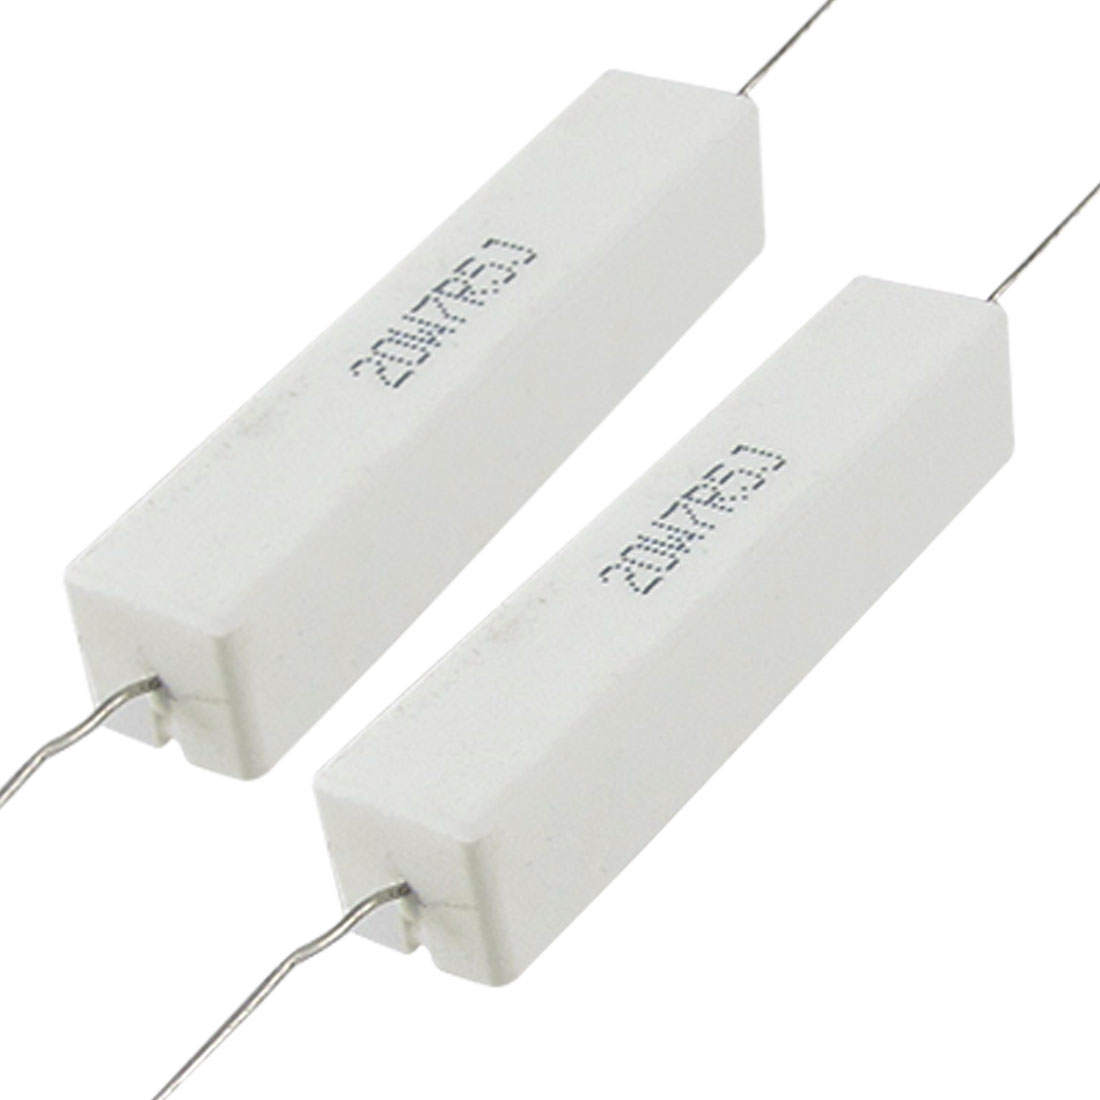 2 Pcs 20W 7.5 ohm 7R5 Wire Wound Ceramic Cement Resistor